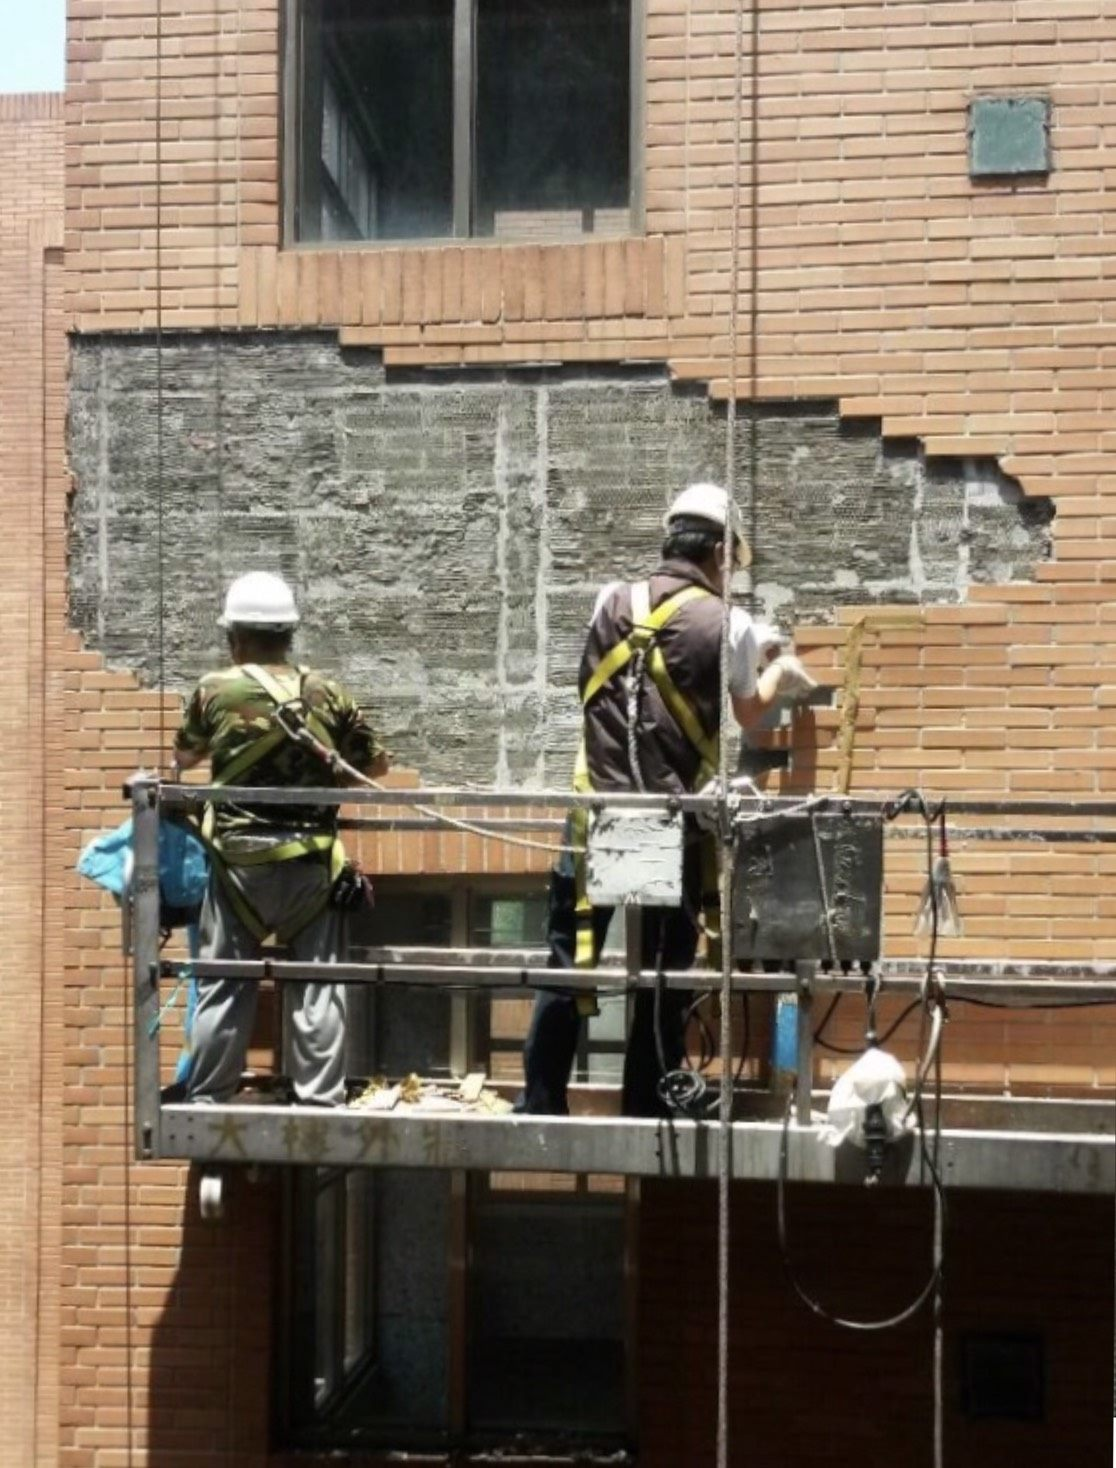 Workers repairing damaged building wall surfaces